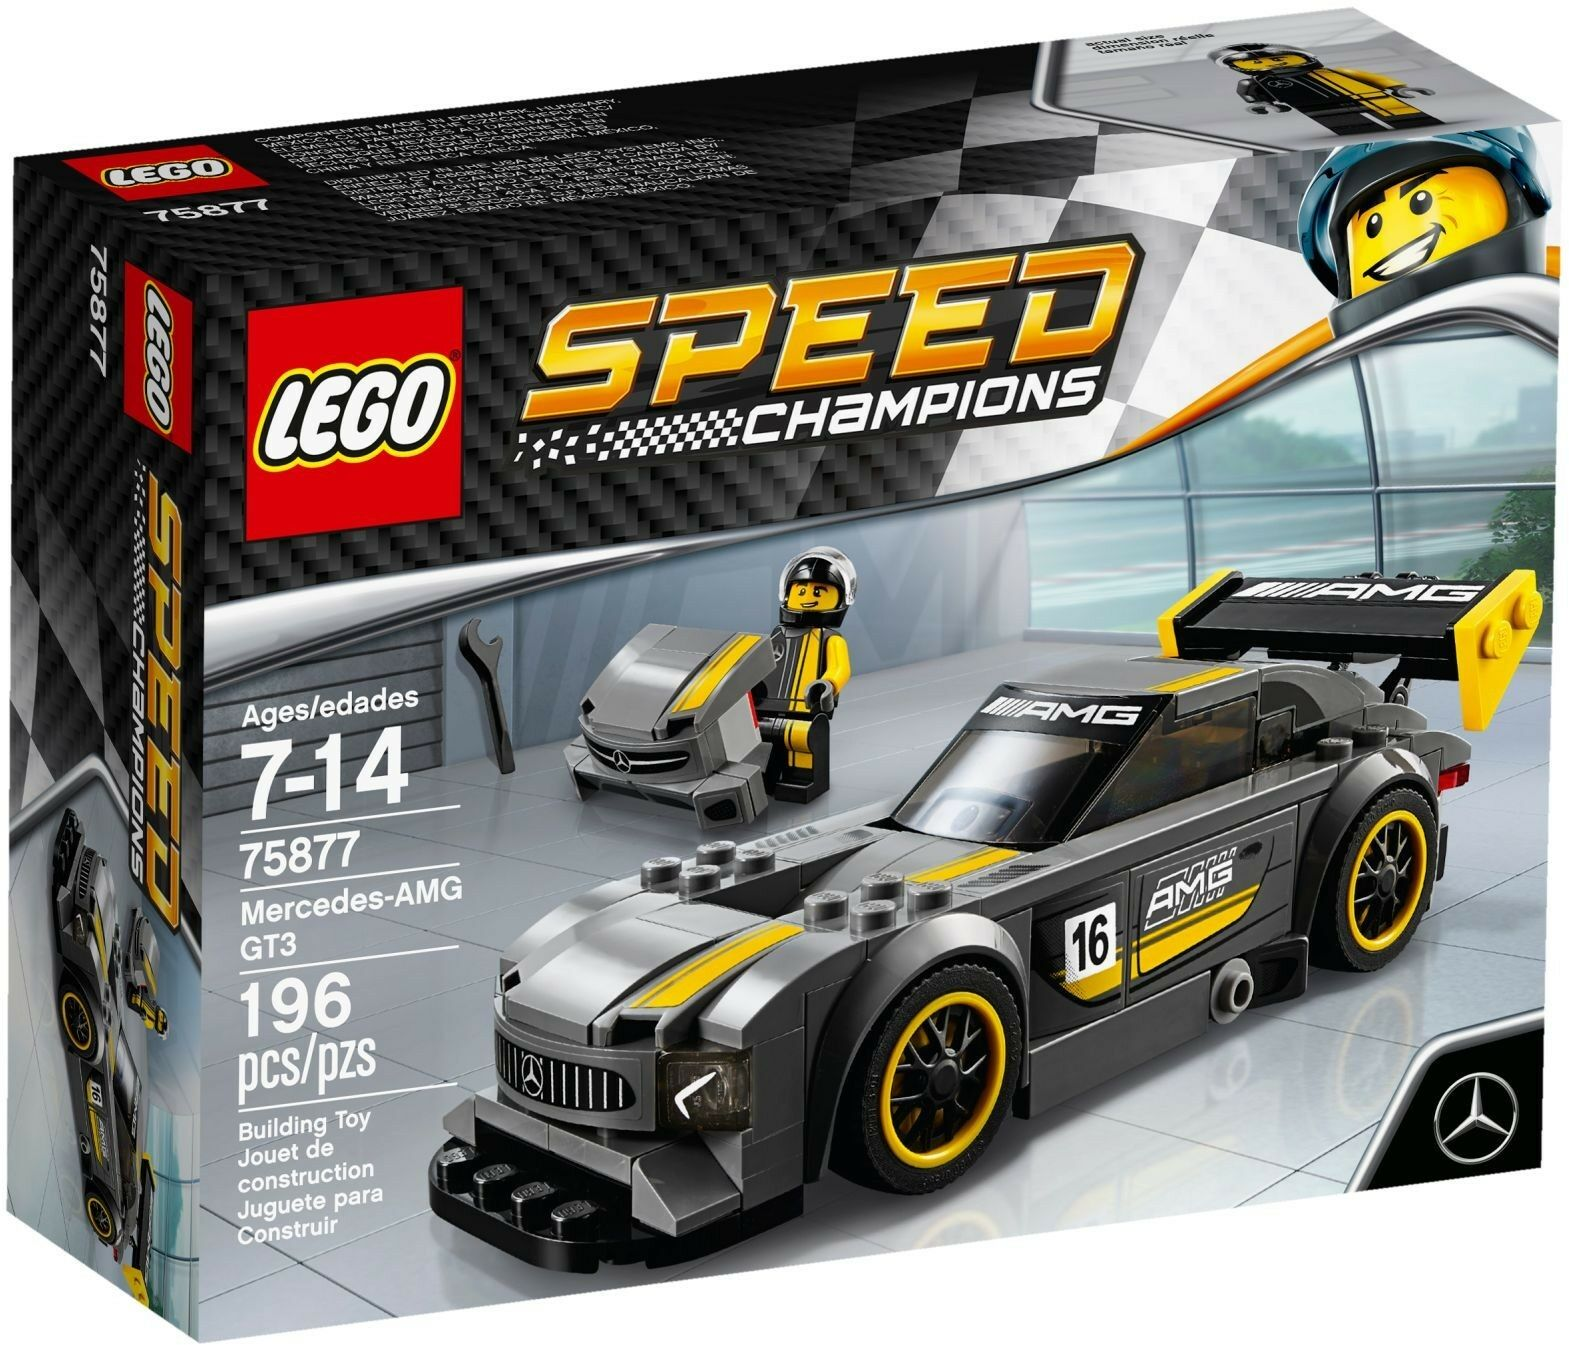 Lego 75877- Speed Champions - Mercedes-AMG GT3 - MISB - New - Sealed 2